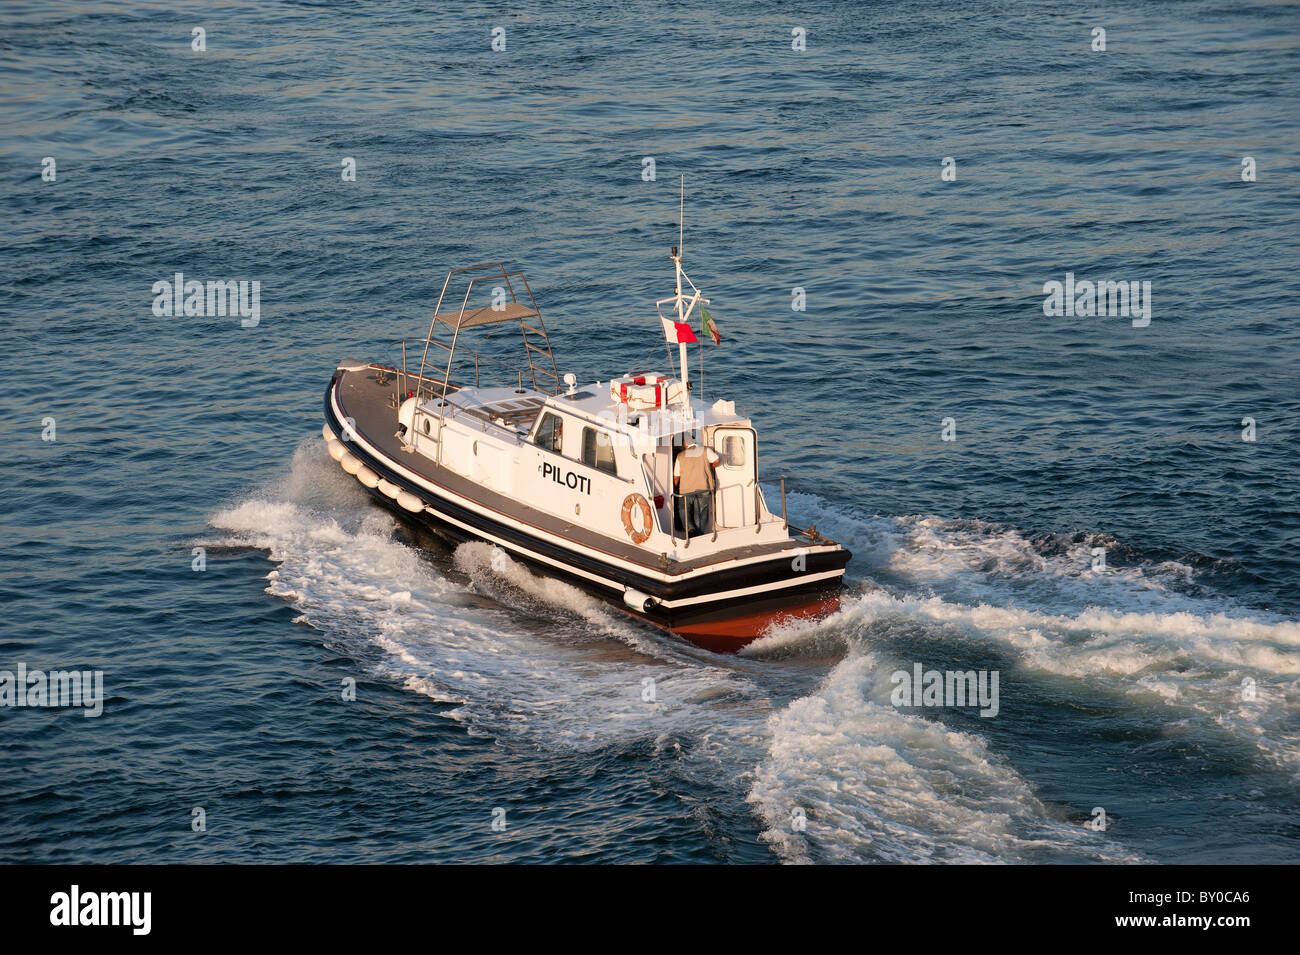 Harbour Pilot Boat Naples Campania Italy - Stock Image